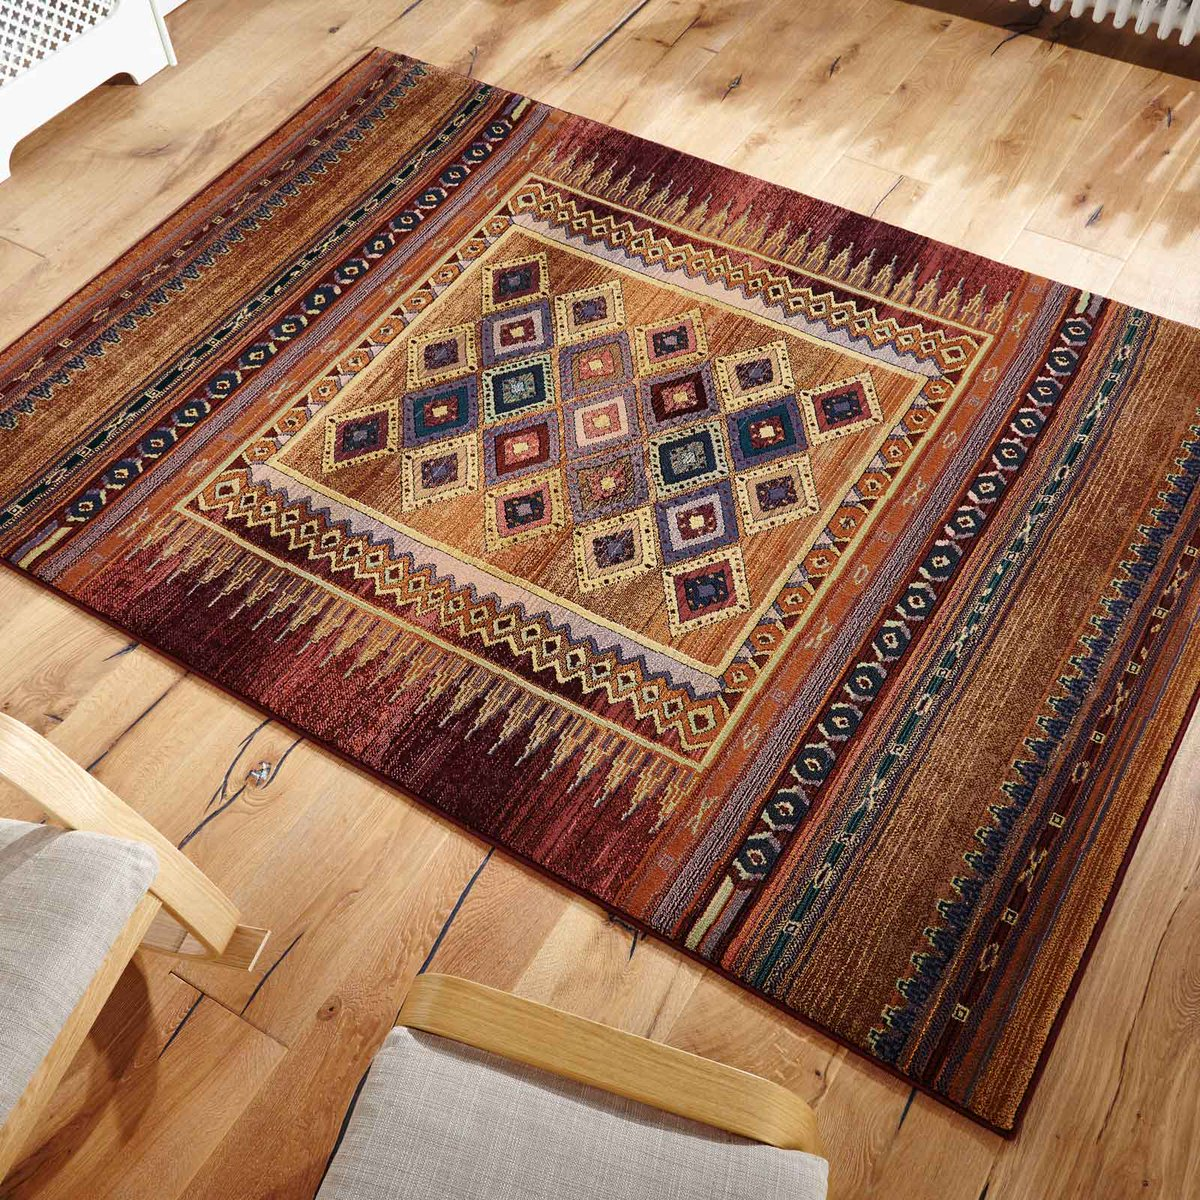 Whether you want a rug to add an element of fun, or just plain cosiness, Gabbeh rugs are a great option  http://bit.ly/2y9DES9 #Rugspic.twitter.com/EC7spAXeEu  by The Rug Seller